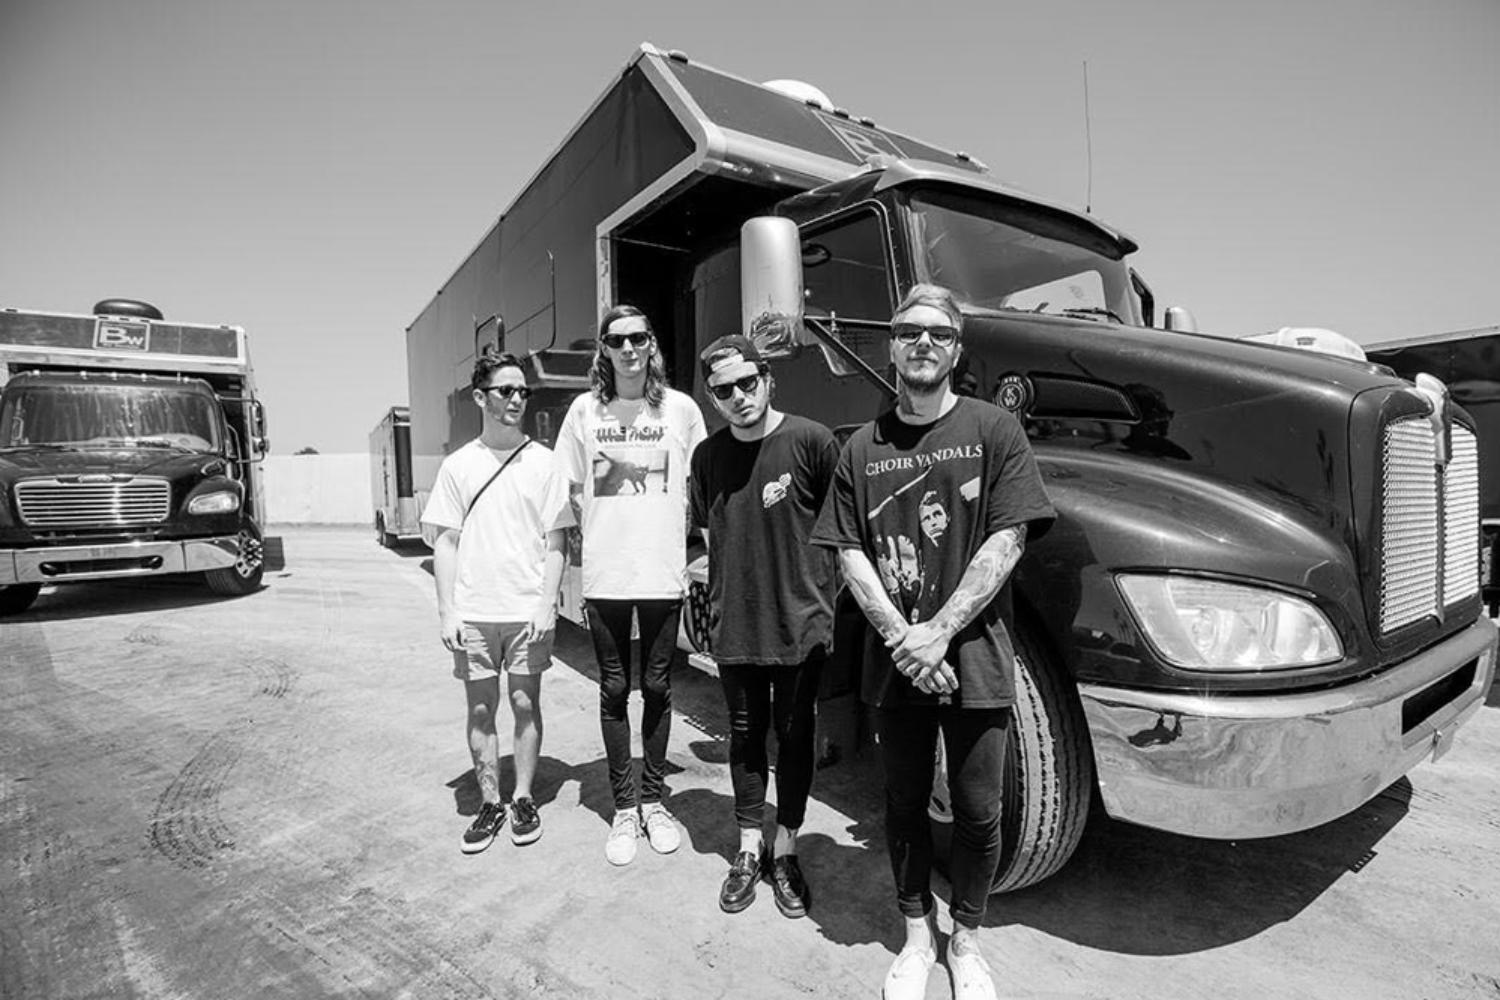 Moose Blood share Warped Tour video diary